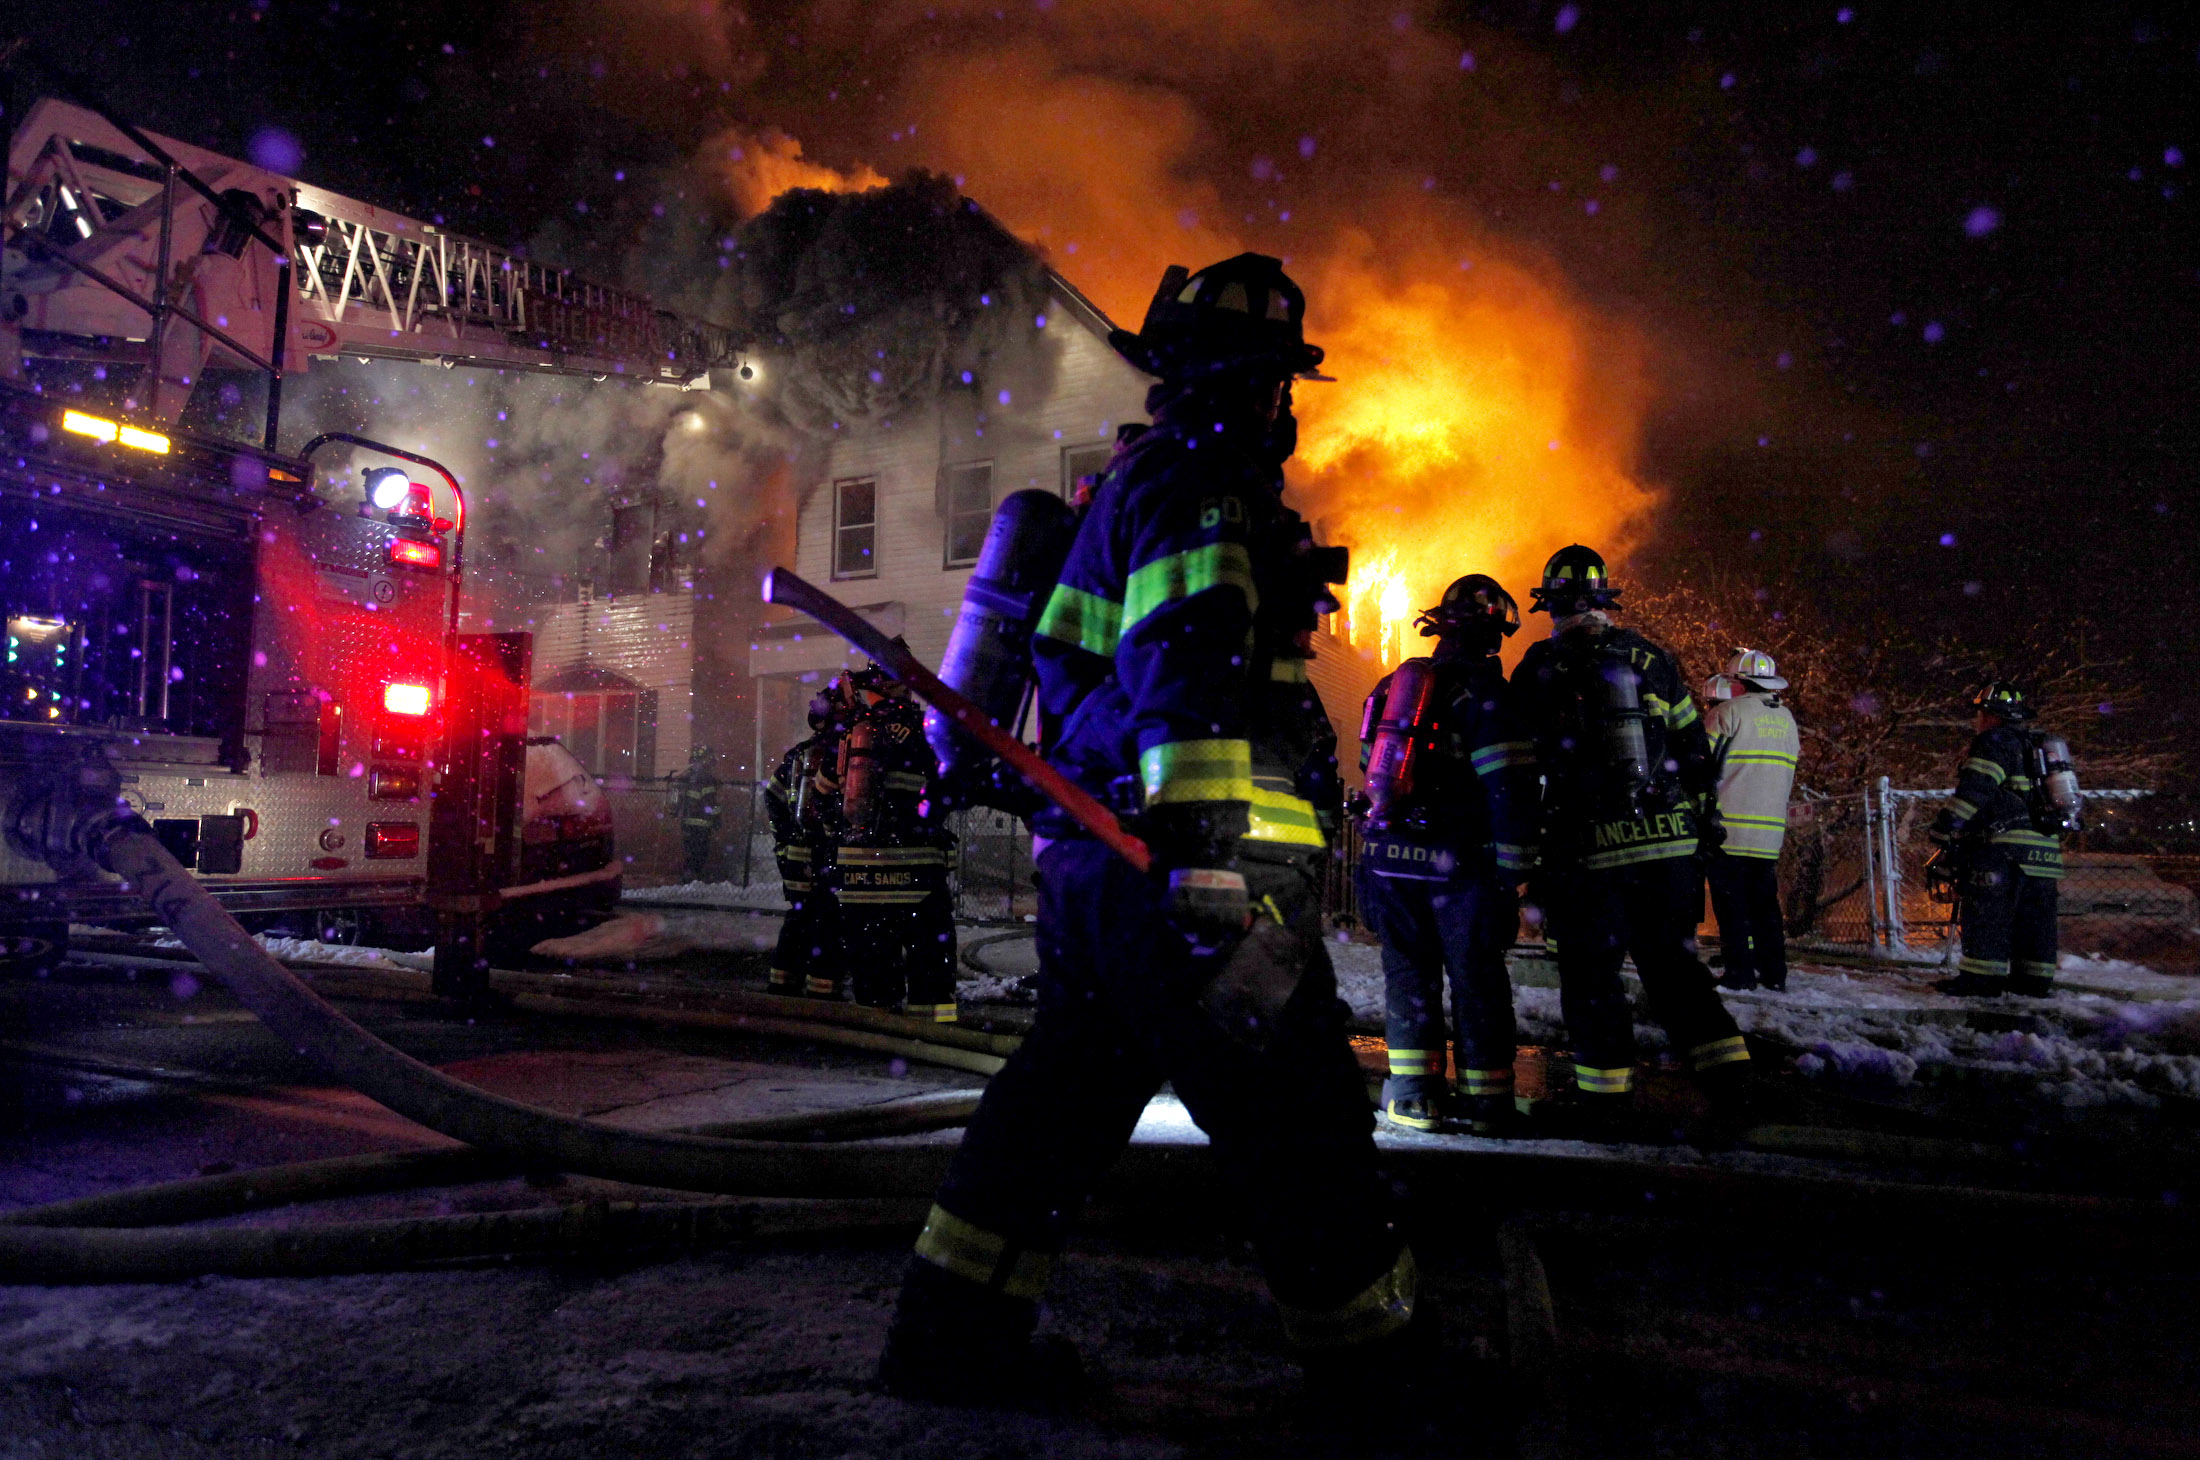 Chelsea firefighters battle a blaze at 375 and 373 Crescent Avenue in Chelsea, Massachusetts on Saturday, January 24, 2015.